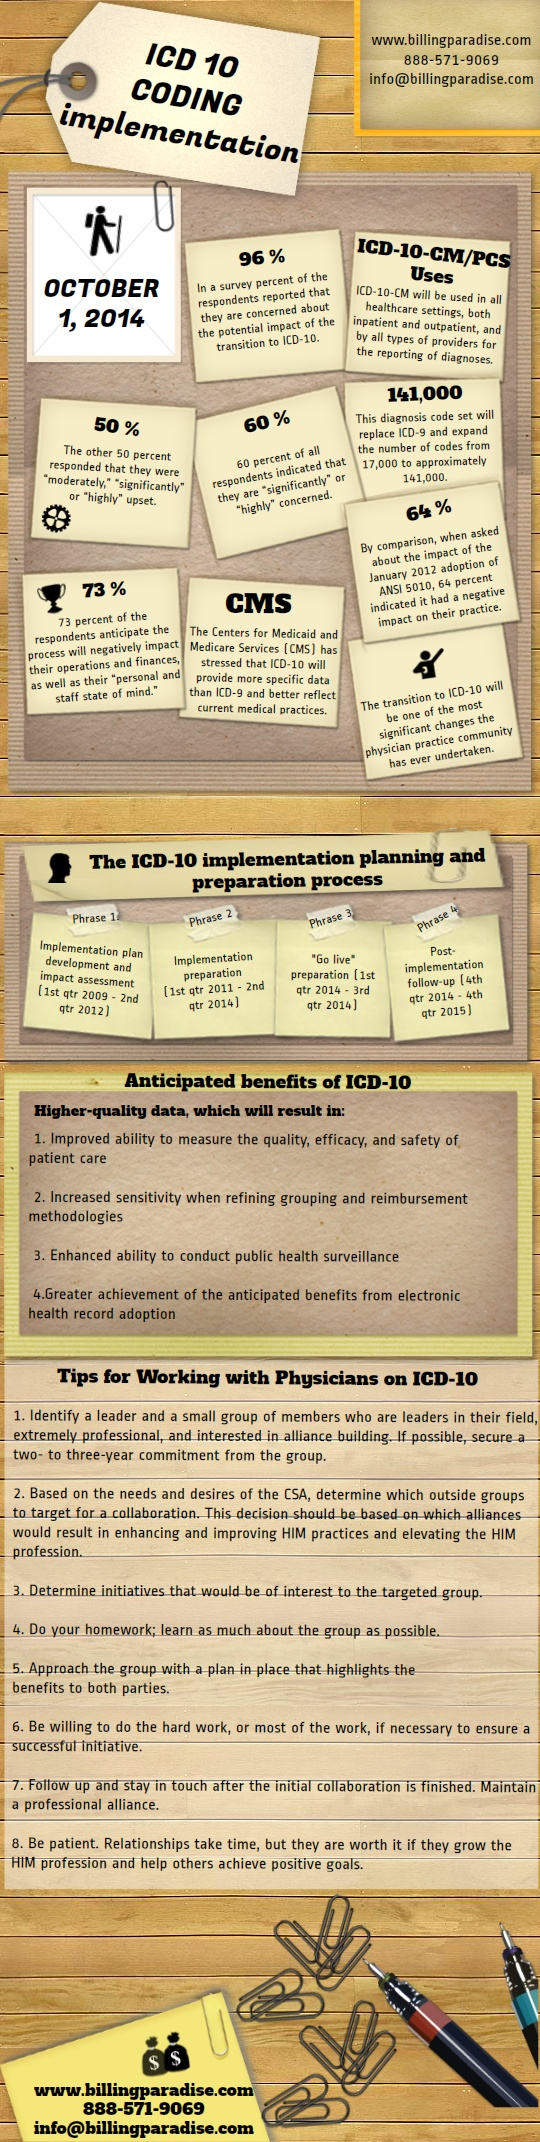 87 best icd 10 images on pinterest icd 10 medical coder and a brief explanation of combination codes the billingparadise way fandeluxe Image collections